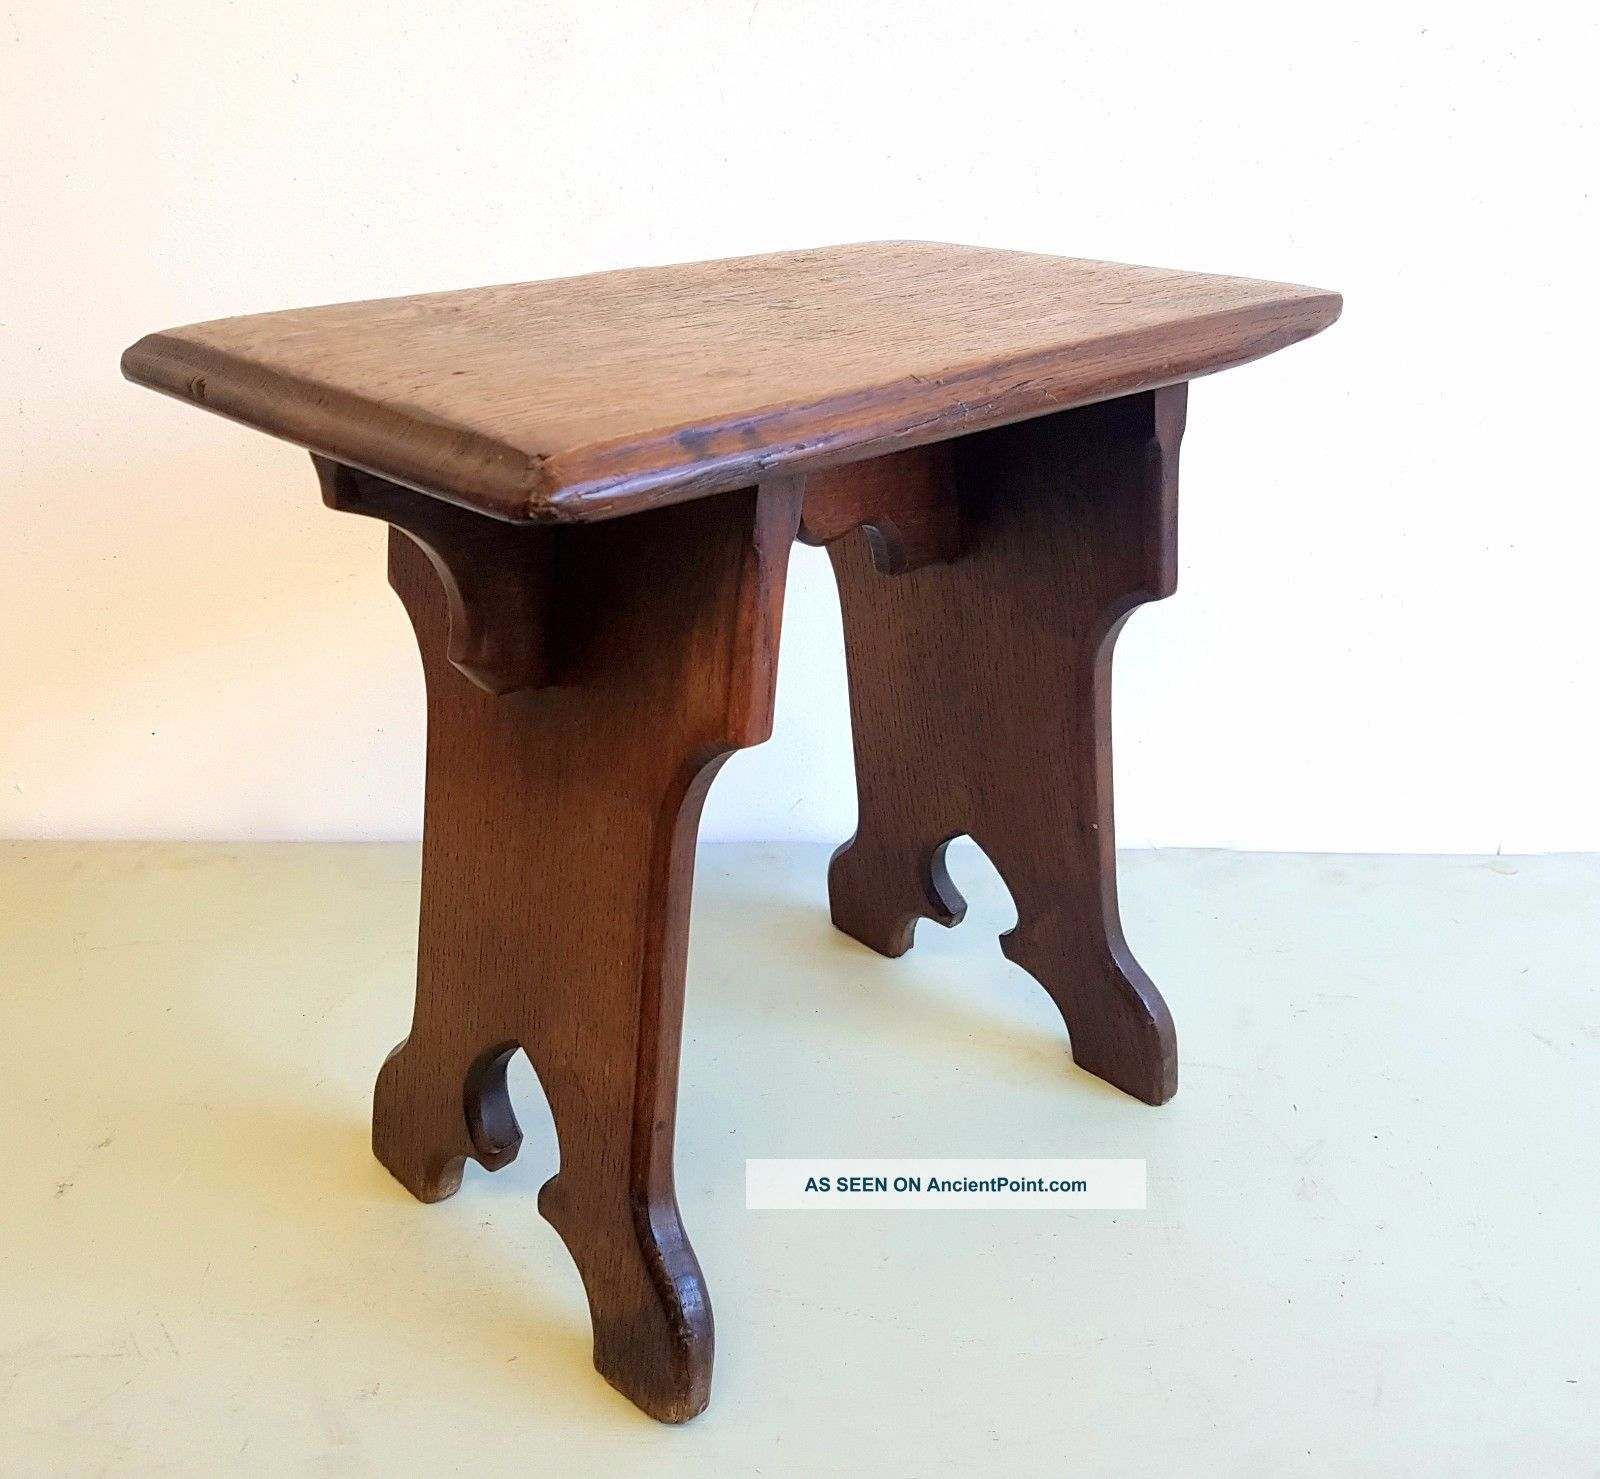 Victorian Gothic Arts And Crafts Oak Stool 1800-1899 photo